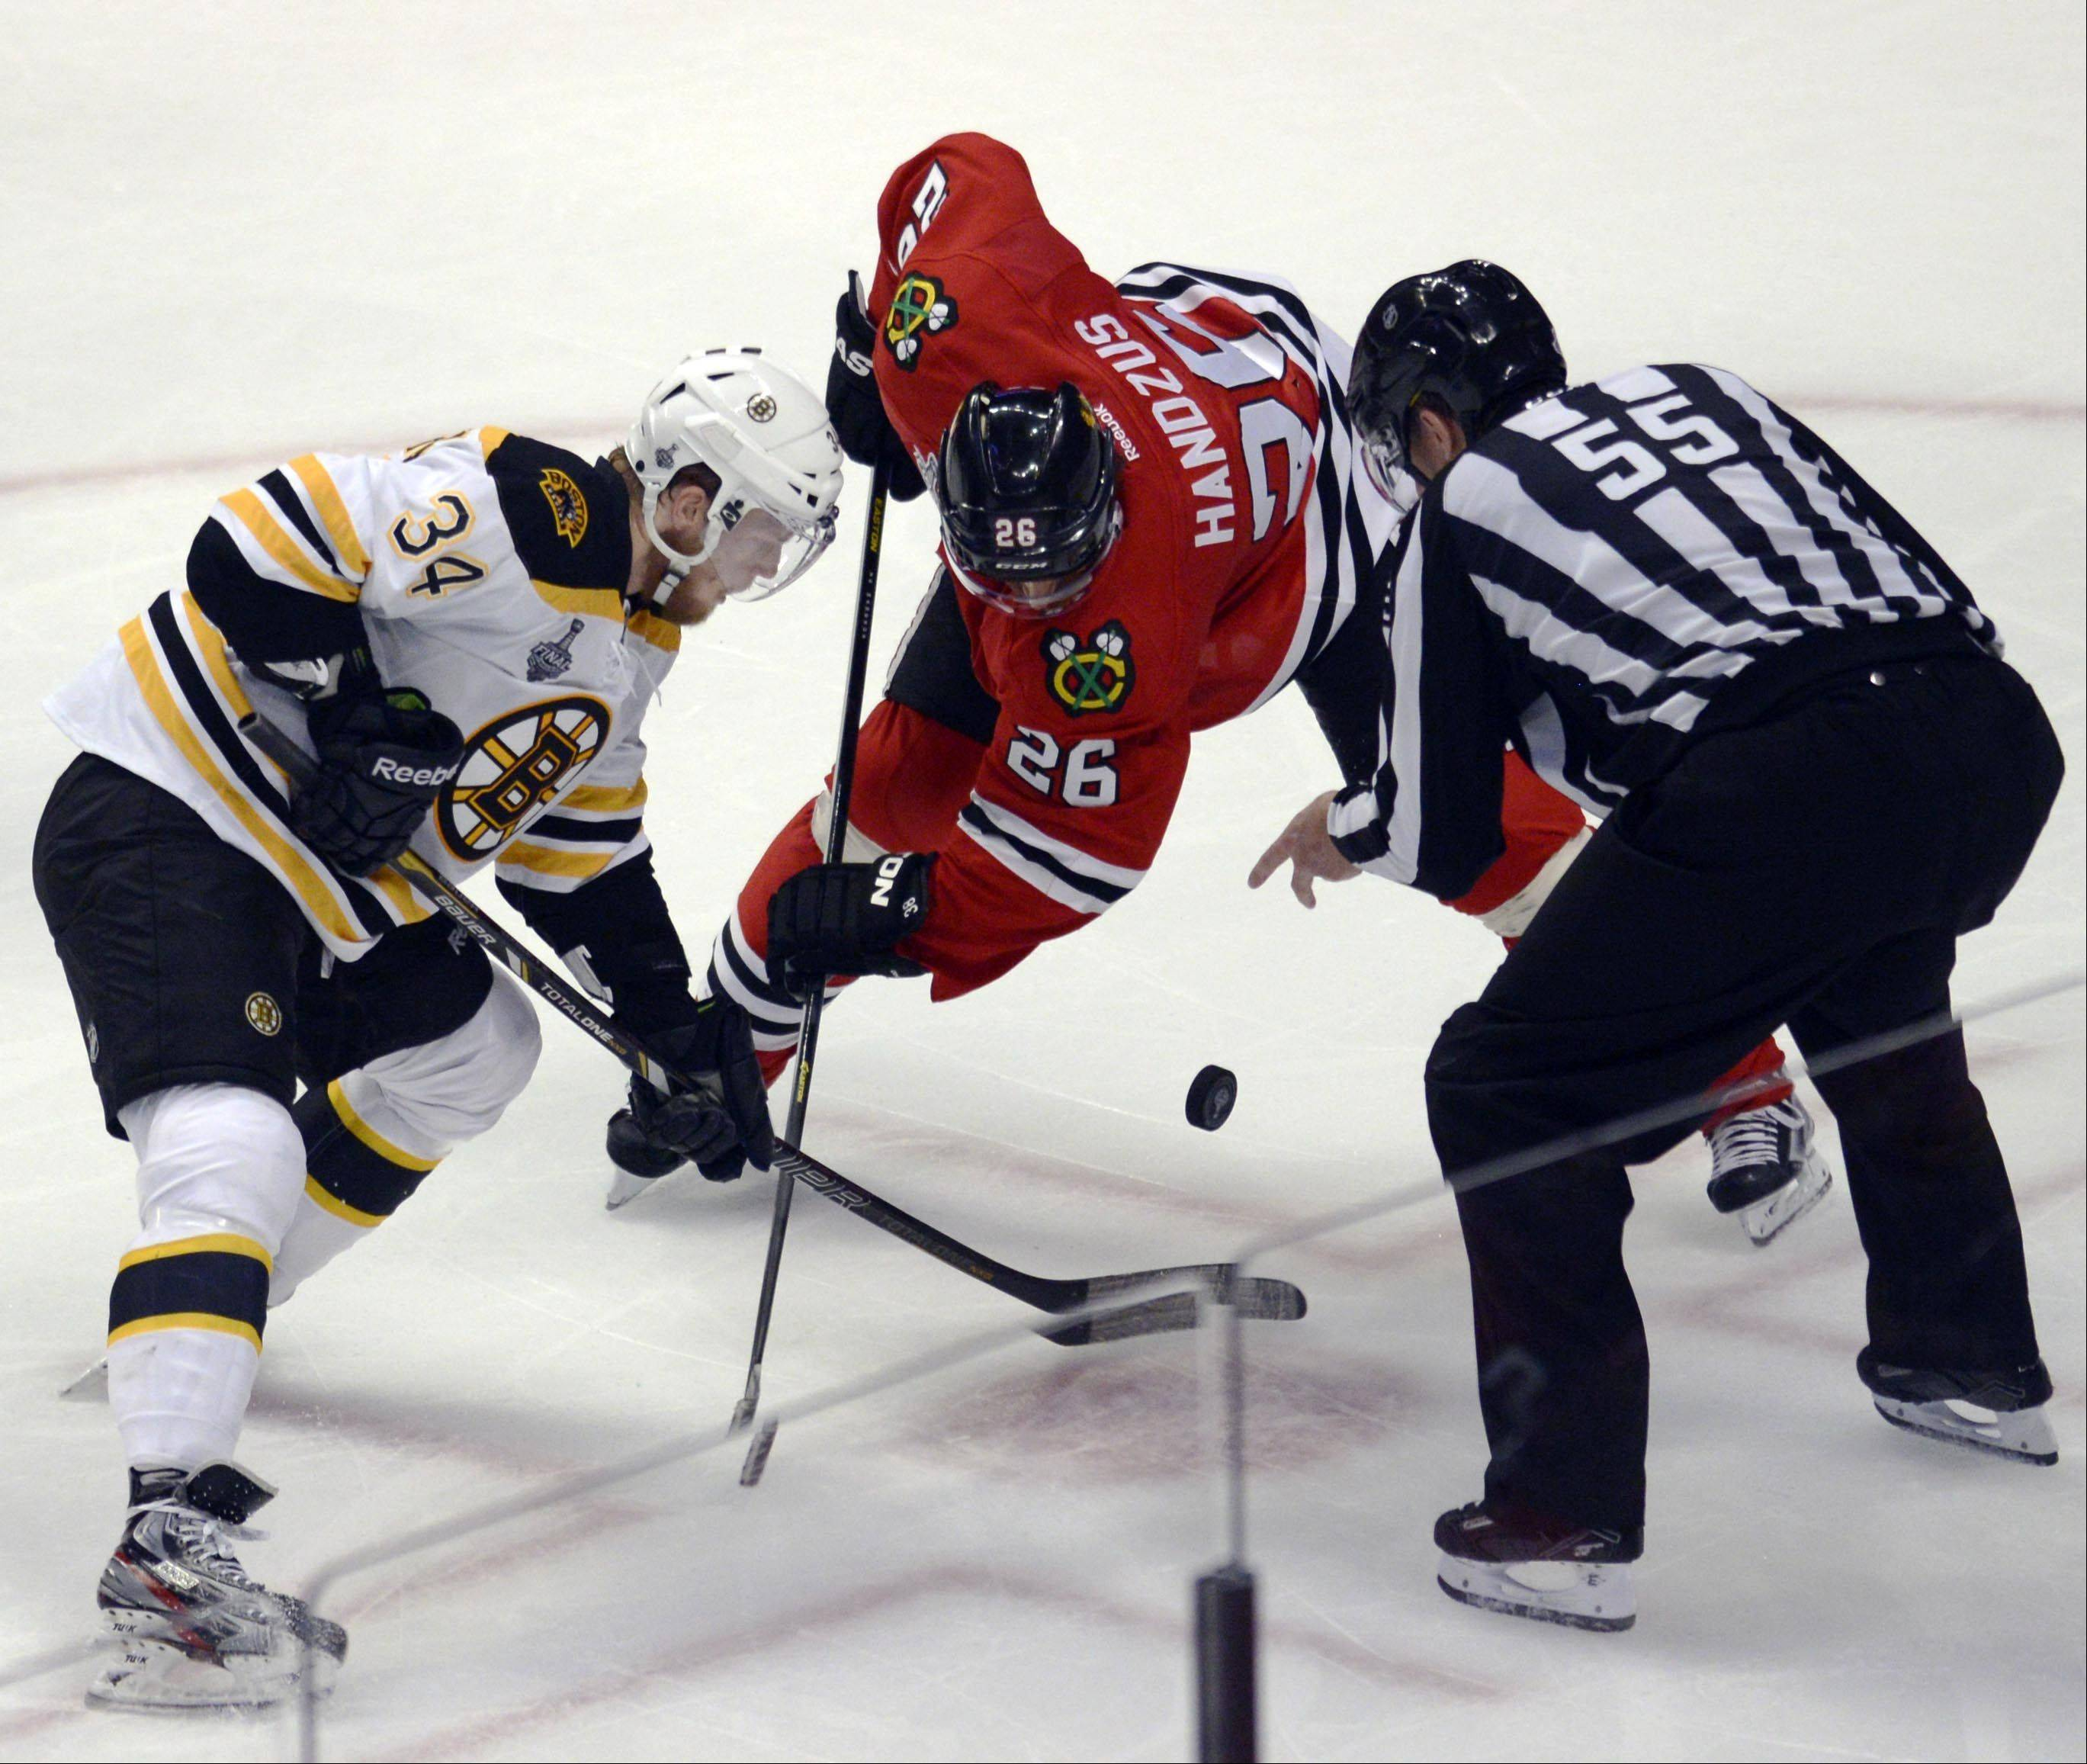 After struggling earlier in the series, the Blackhawks won 58 percent of the faceoffs Saturday in Game 5 of the Stanley Cup Final.